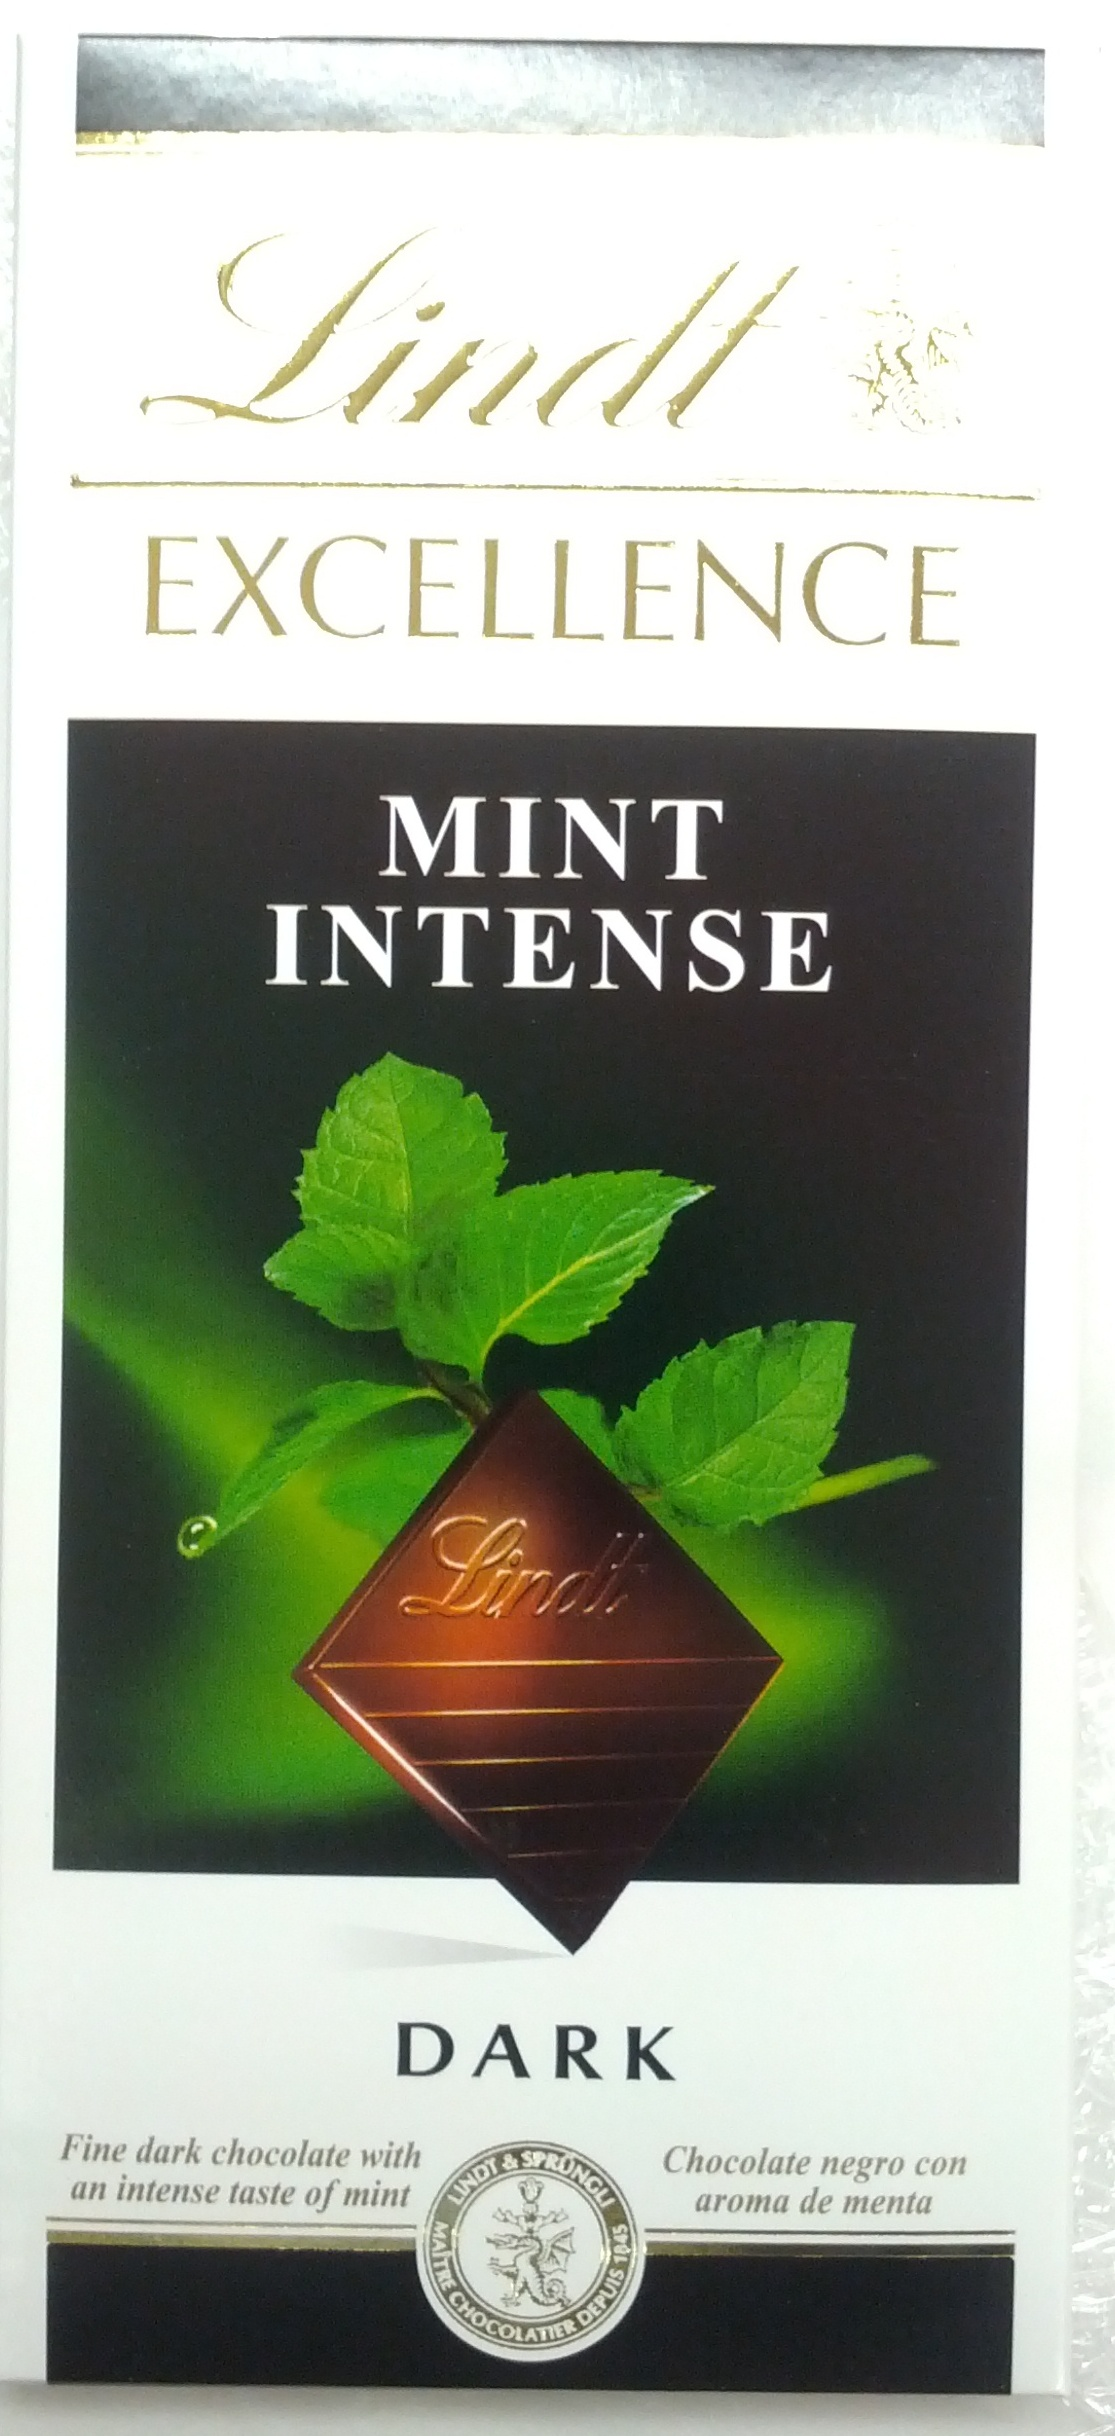 Excellence Menthe Intense Noir - Product